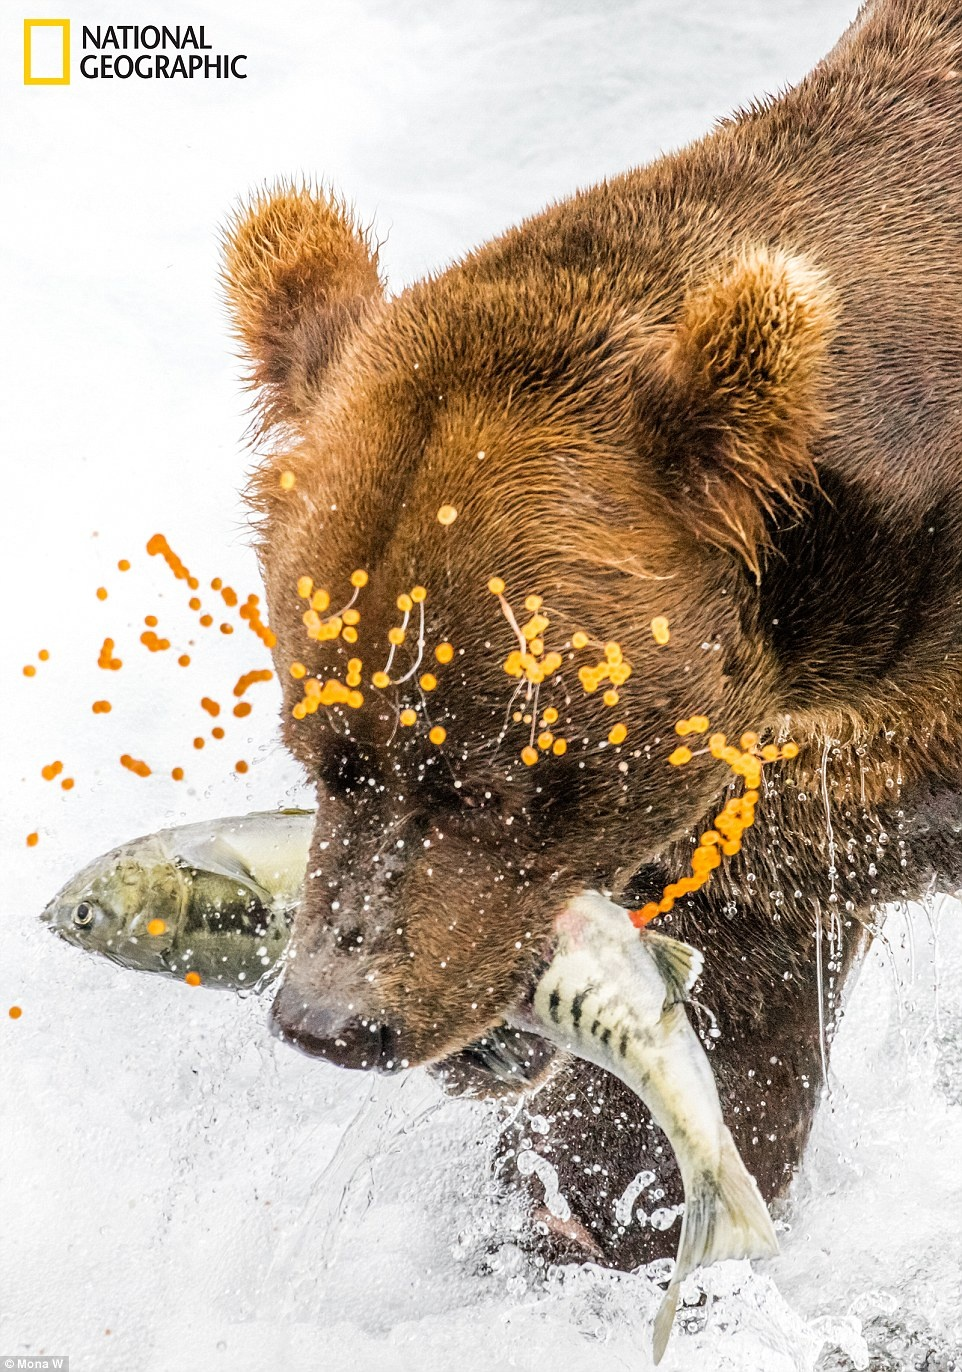 anh du thi National Geographic 2016 anh 2